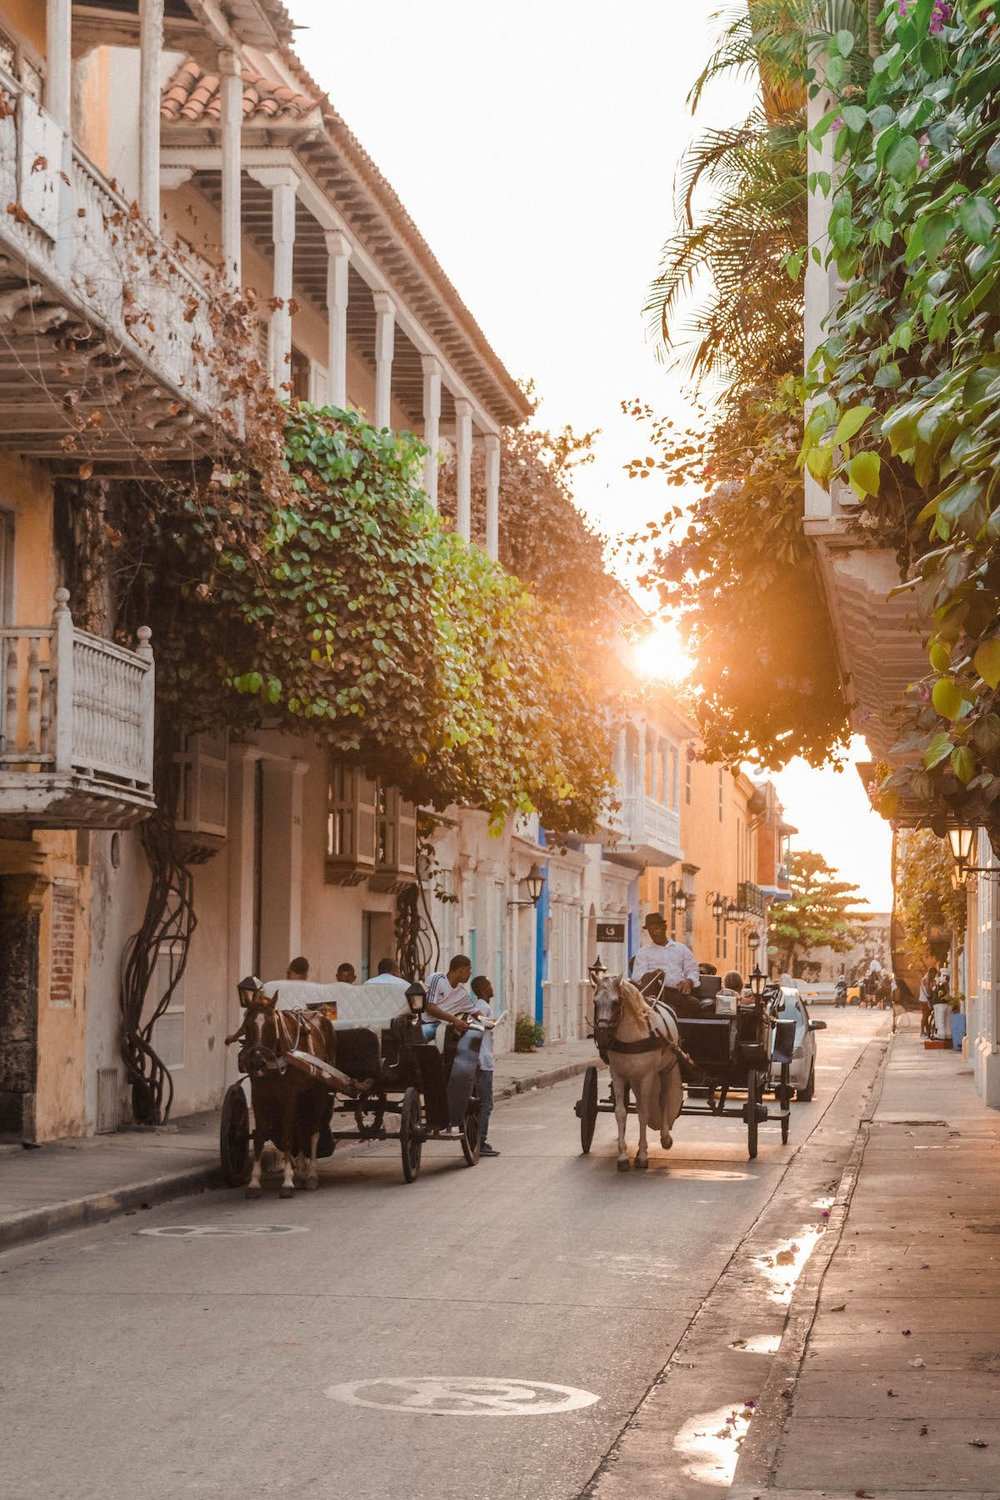 8-things-you-cannot-miss-in-cartagena-16.jpg